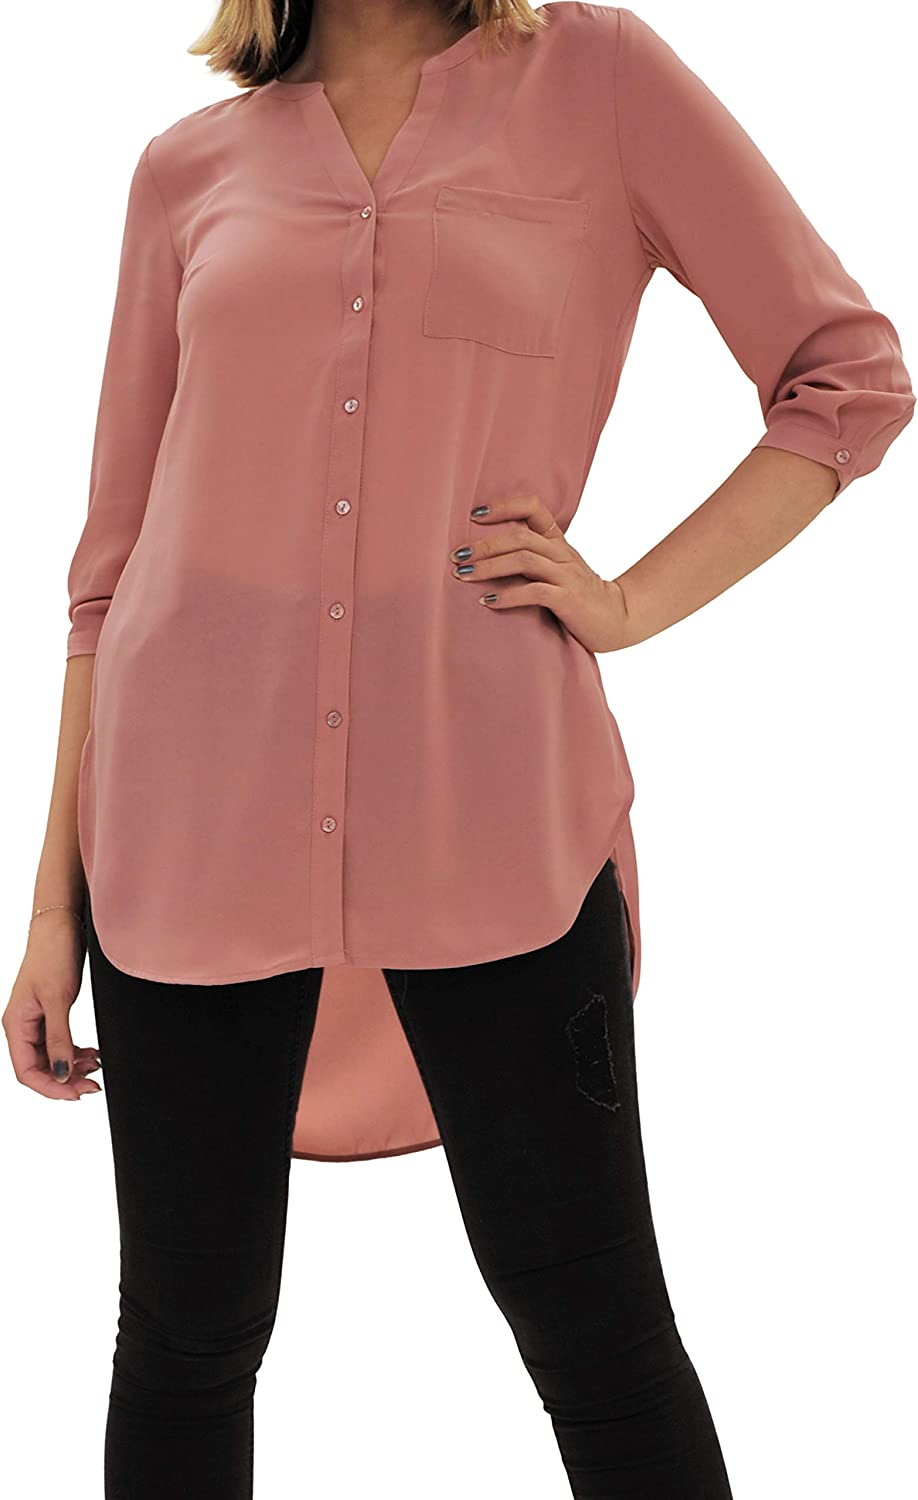 DR2 by Daniel Rainn Women's Button Down V Neck Tops ¾ Long Sleeve Two Way Wear Tie Knot Front Shirts Blouses